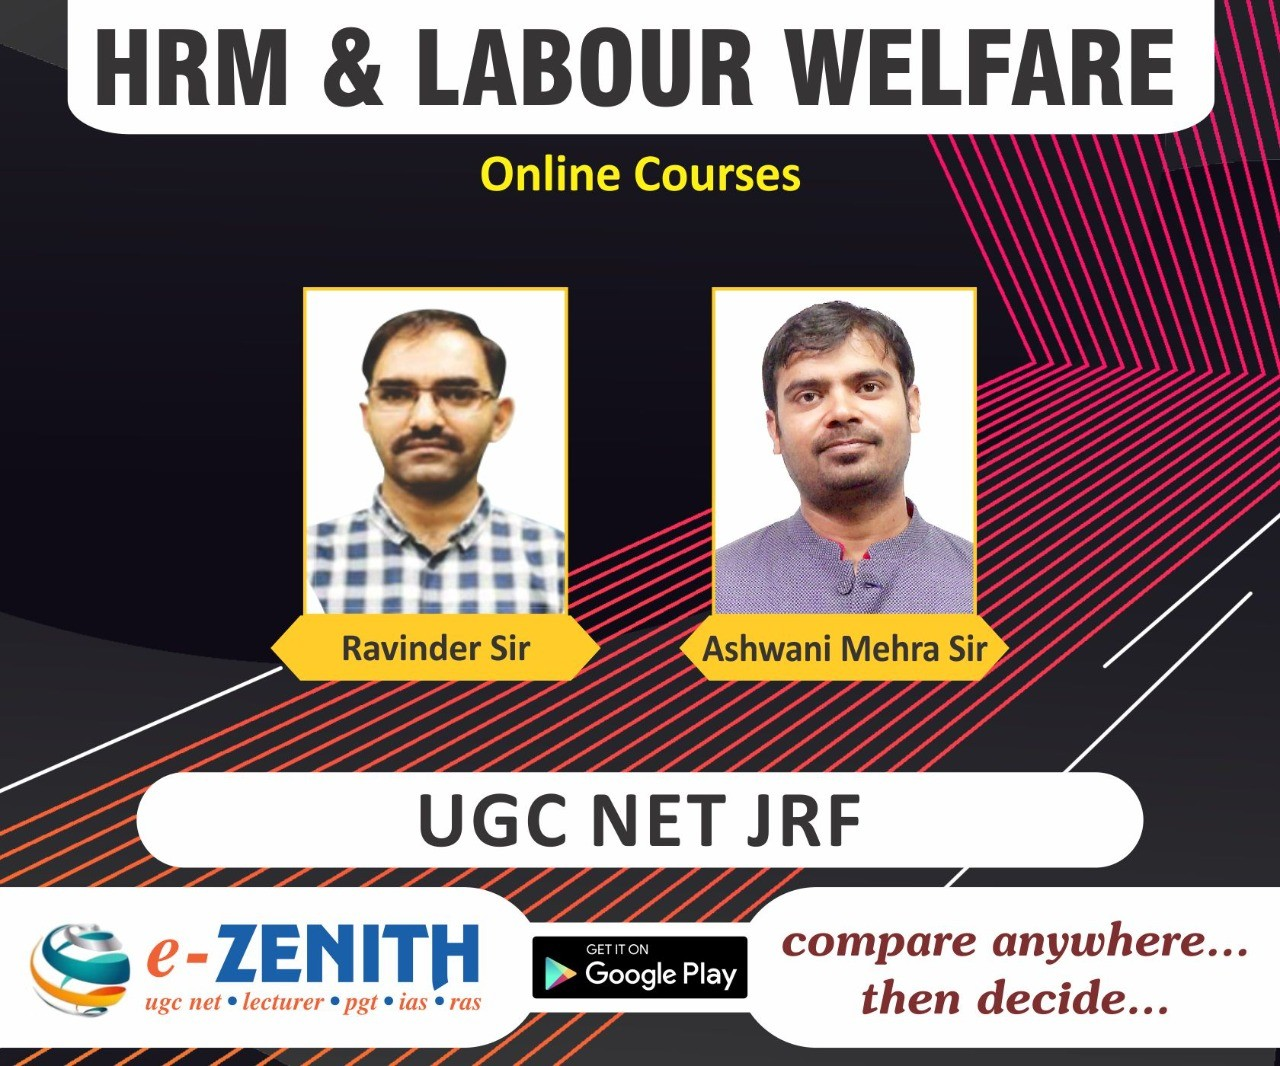 UGC NET HRM & LABOR WELFARE ONLINE COURSE